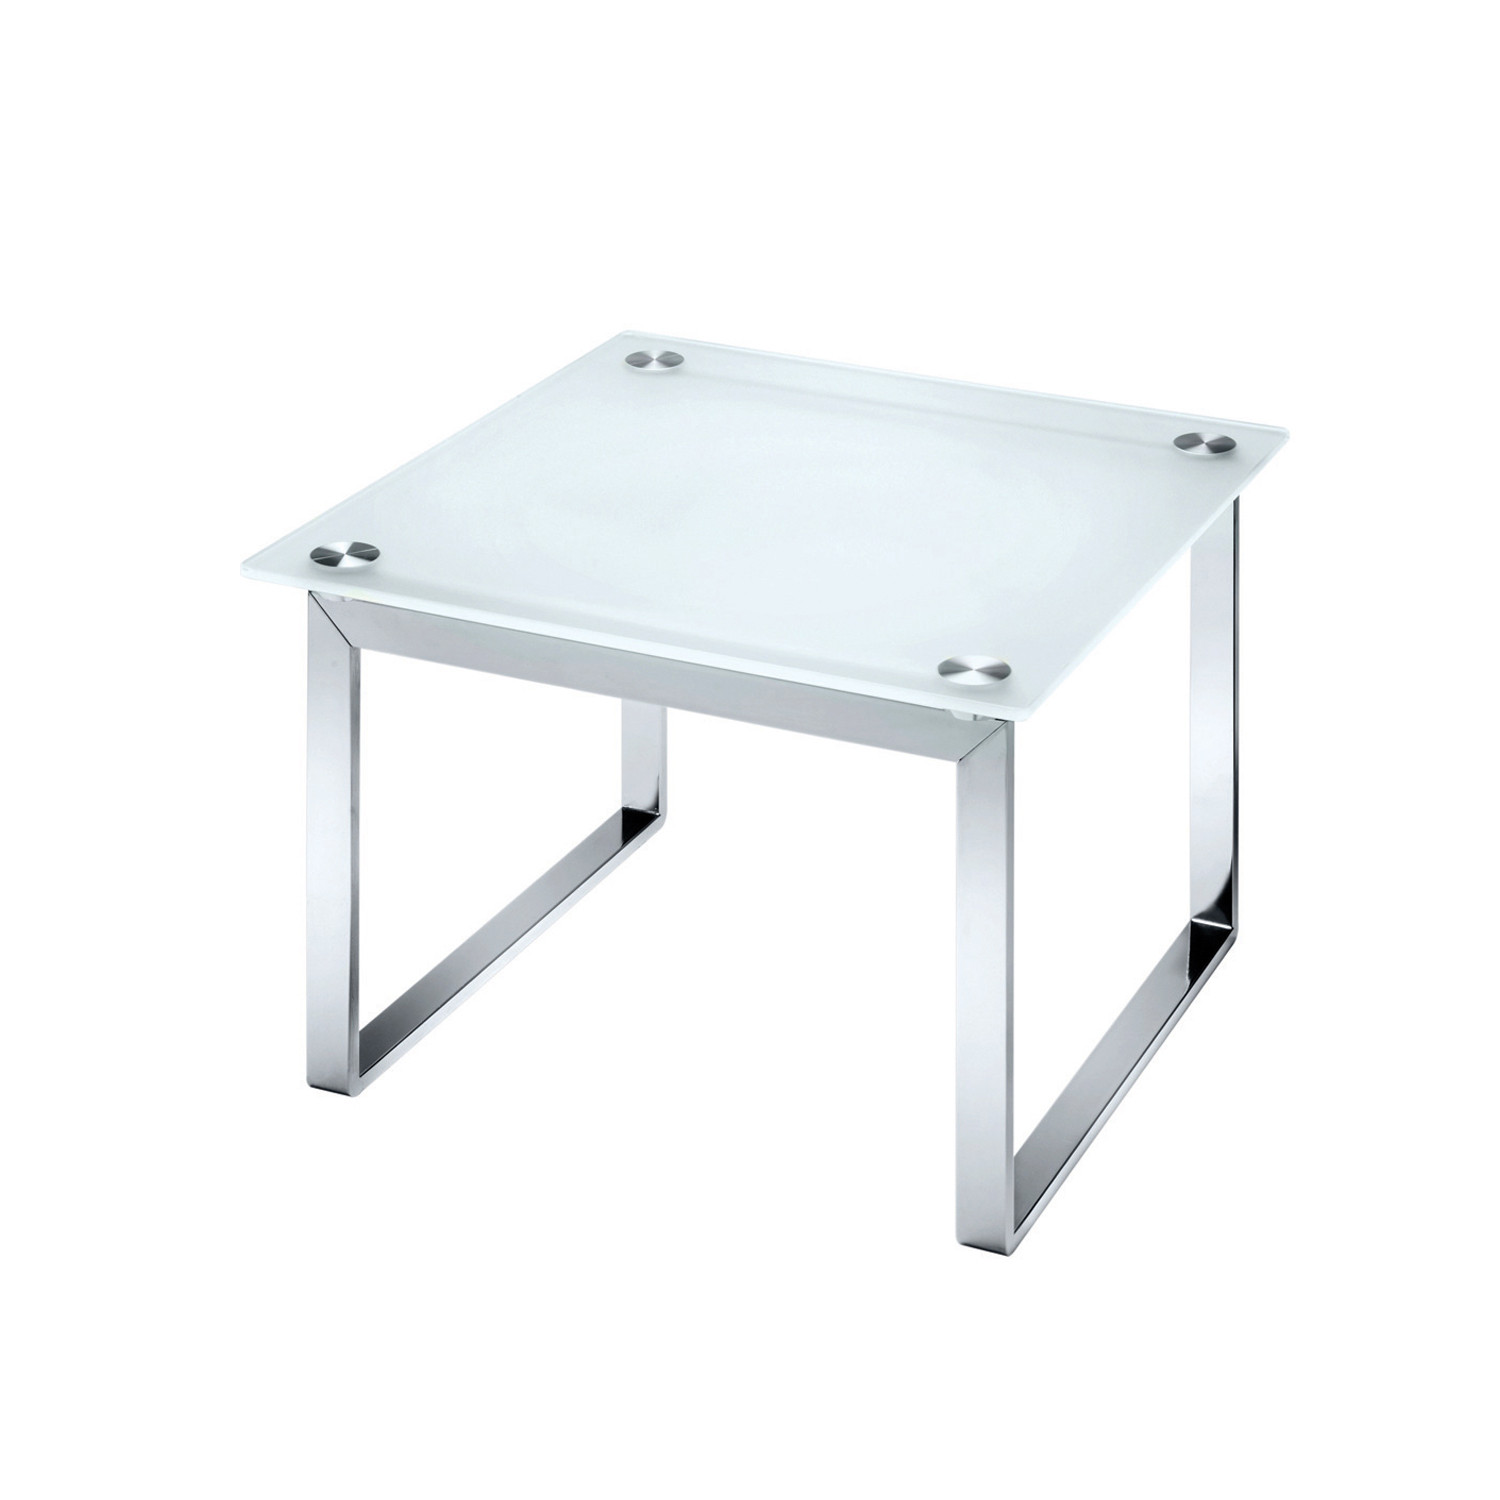 Equity Square Glass Coffee Table